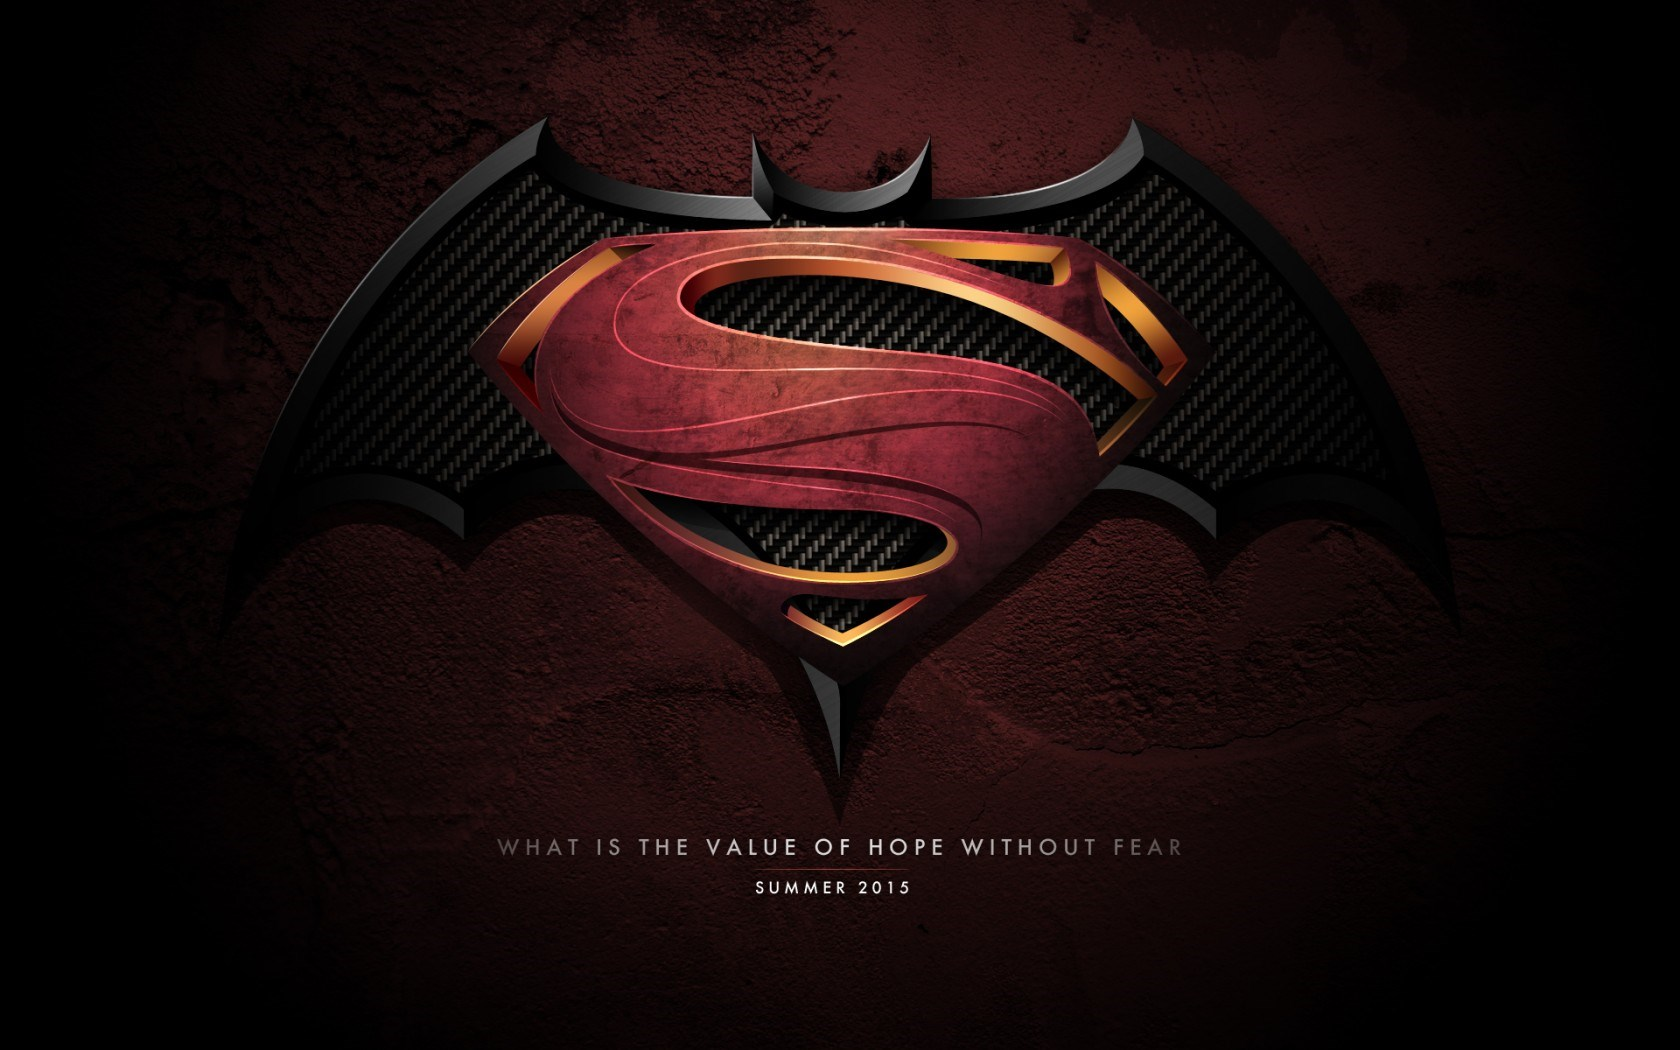 Wallpapers hd 2015 wallpapersafari superman movies wallpaper hd 2015 wallpaper with 1680x1050 resolution voltagebd Image collections